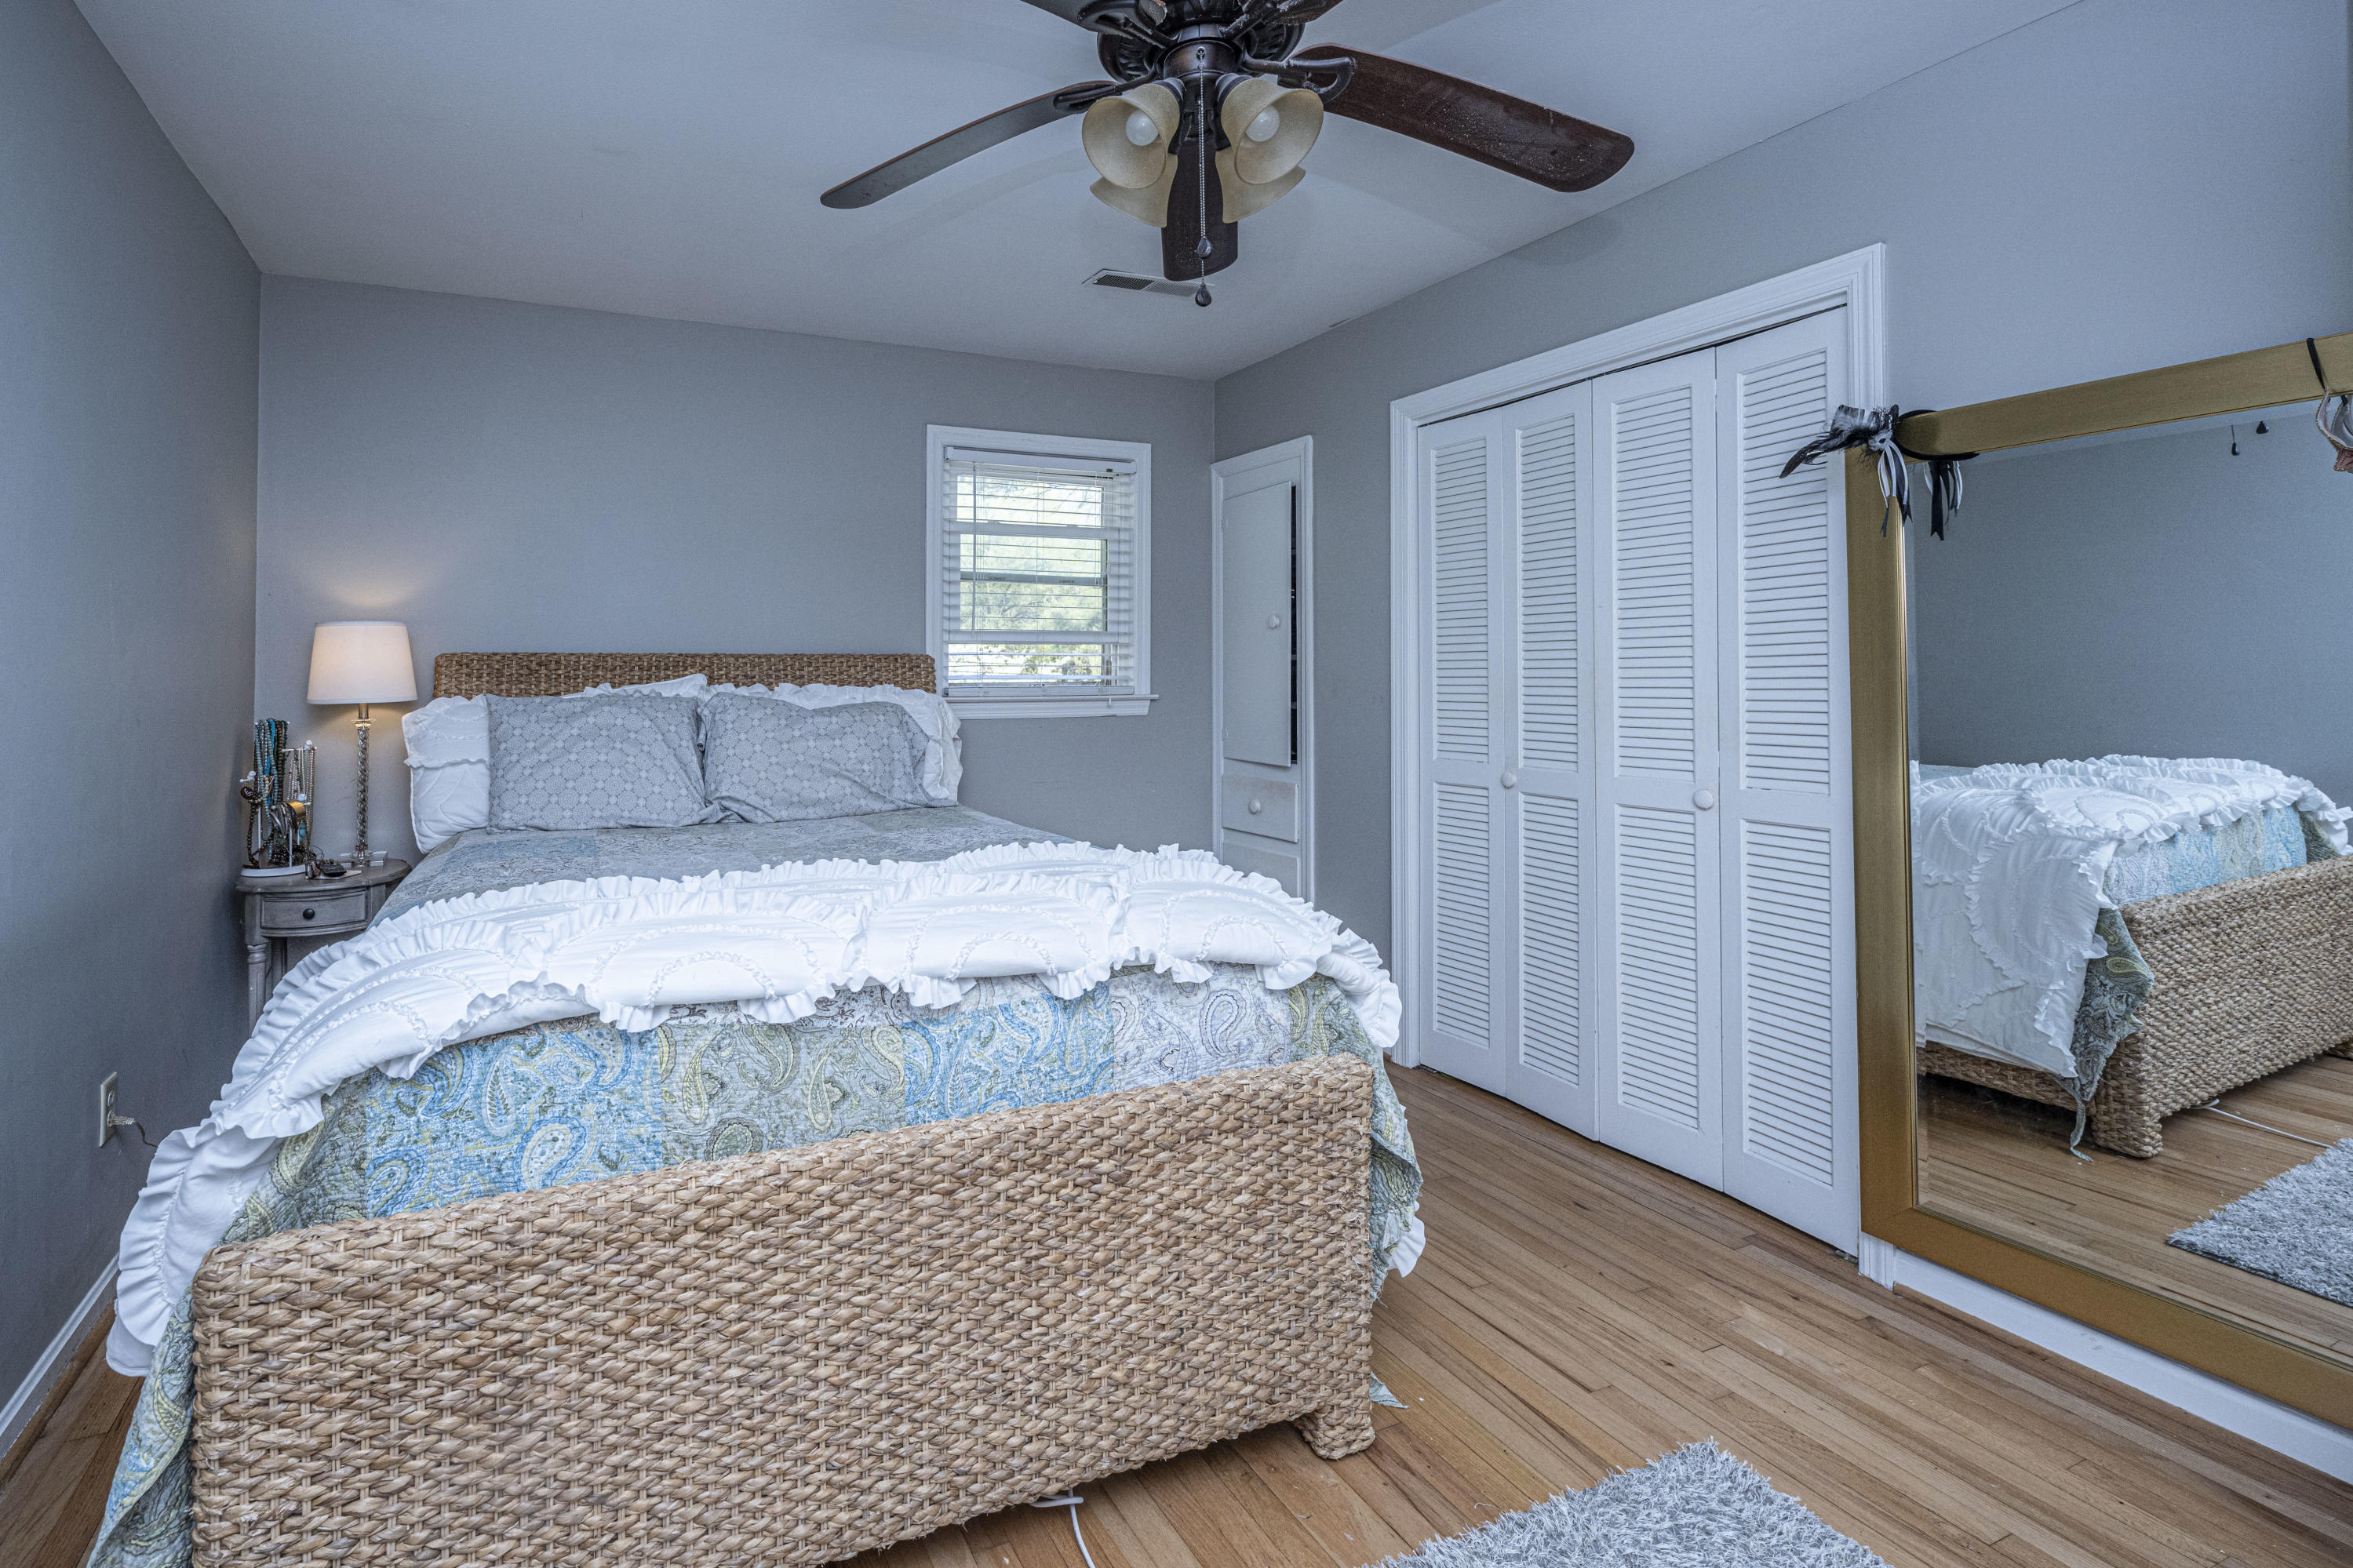 Stiles Point Homes For Sale - 775 Sparrow, Charleston, SC - 0